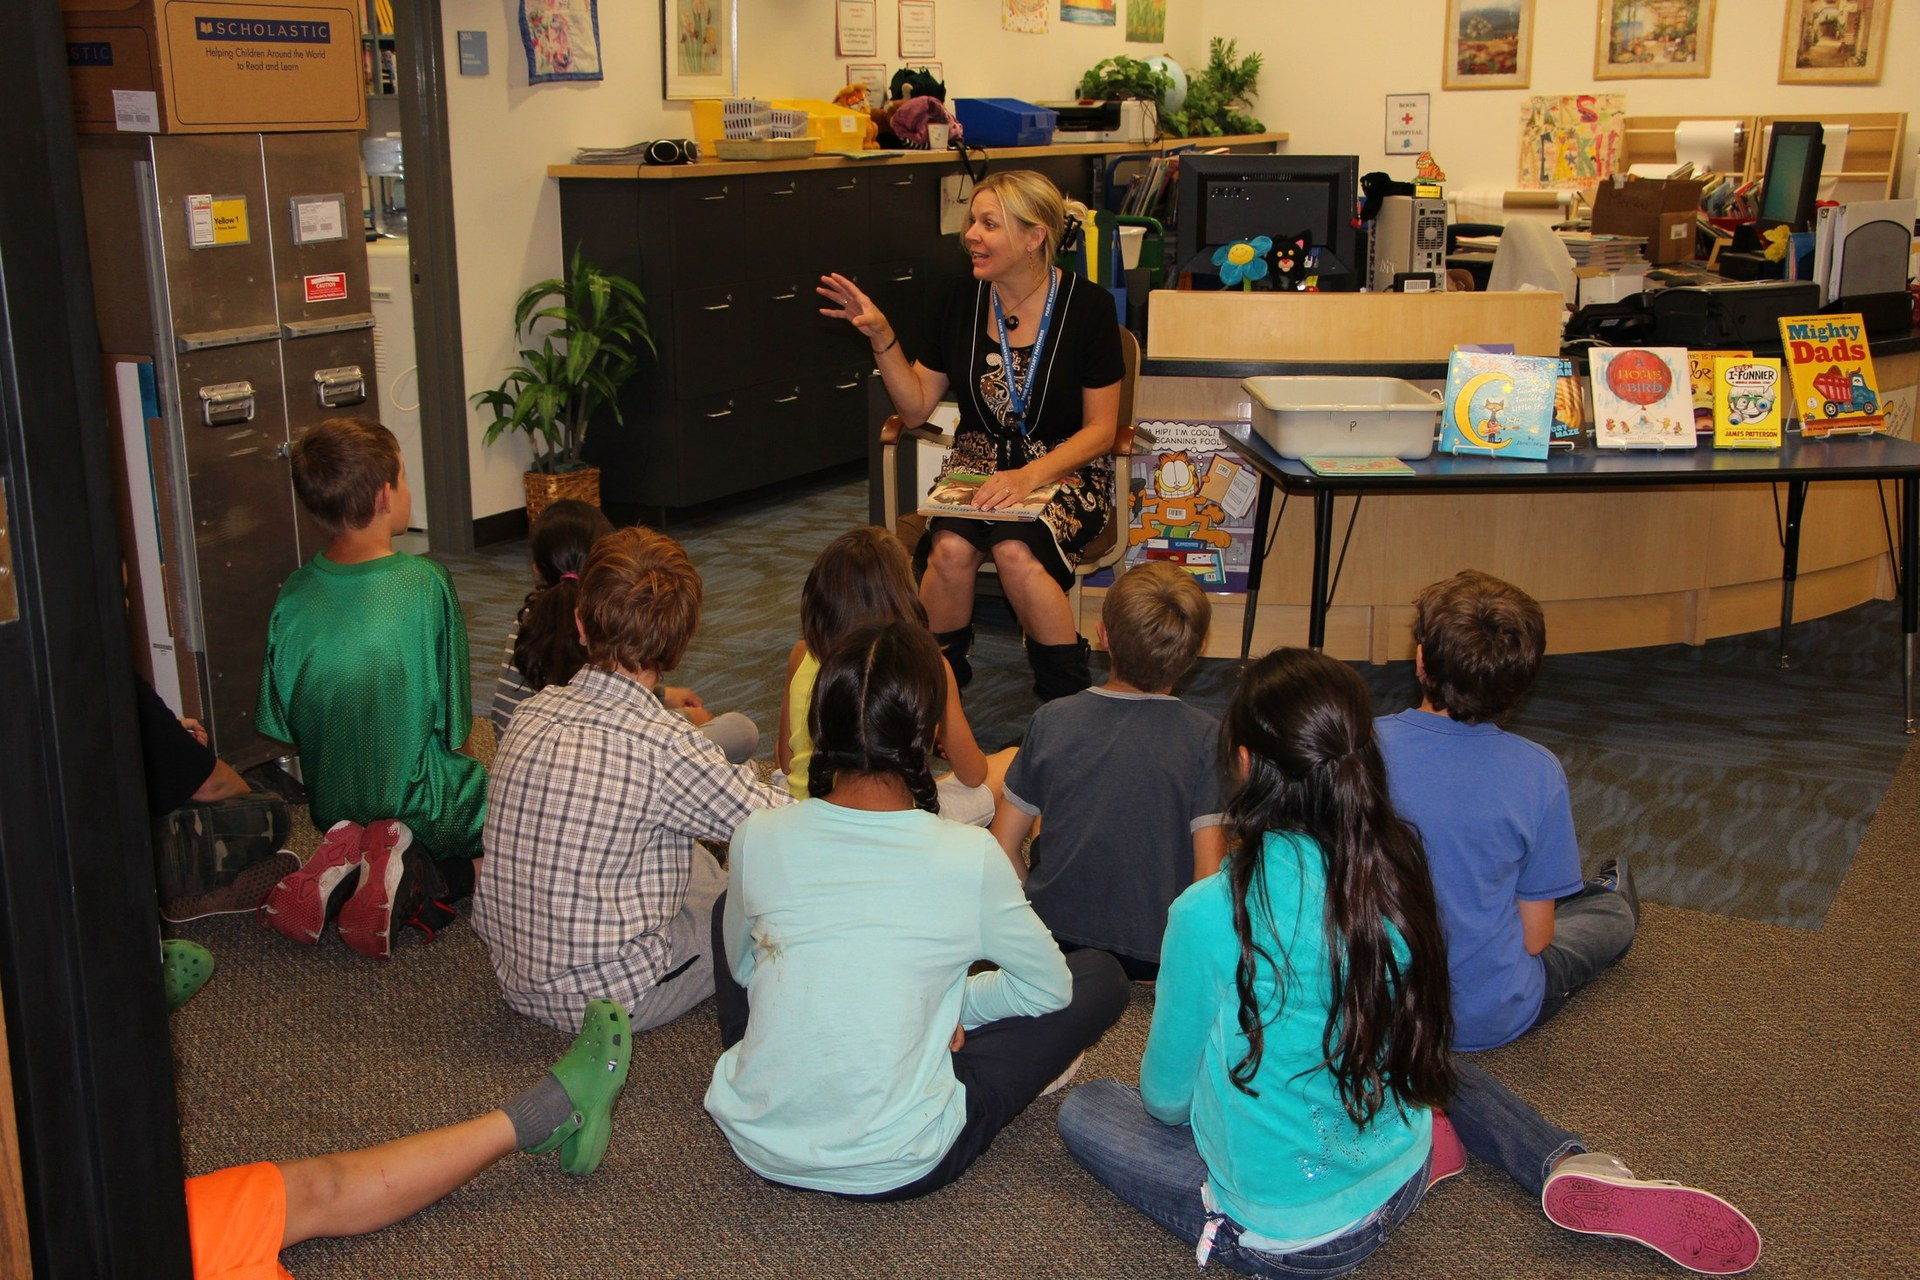 Students listen to a story in the library.